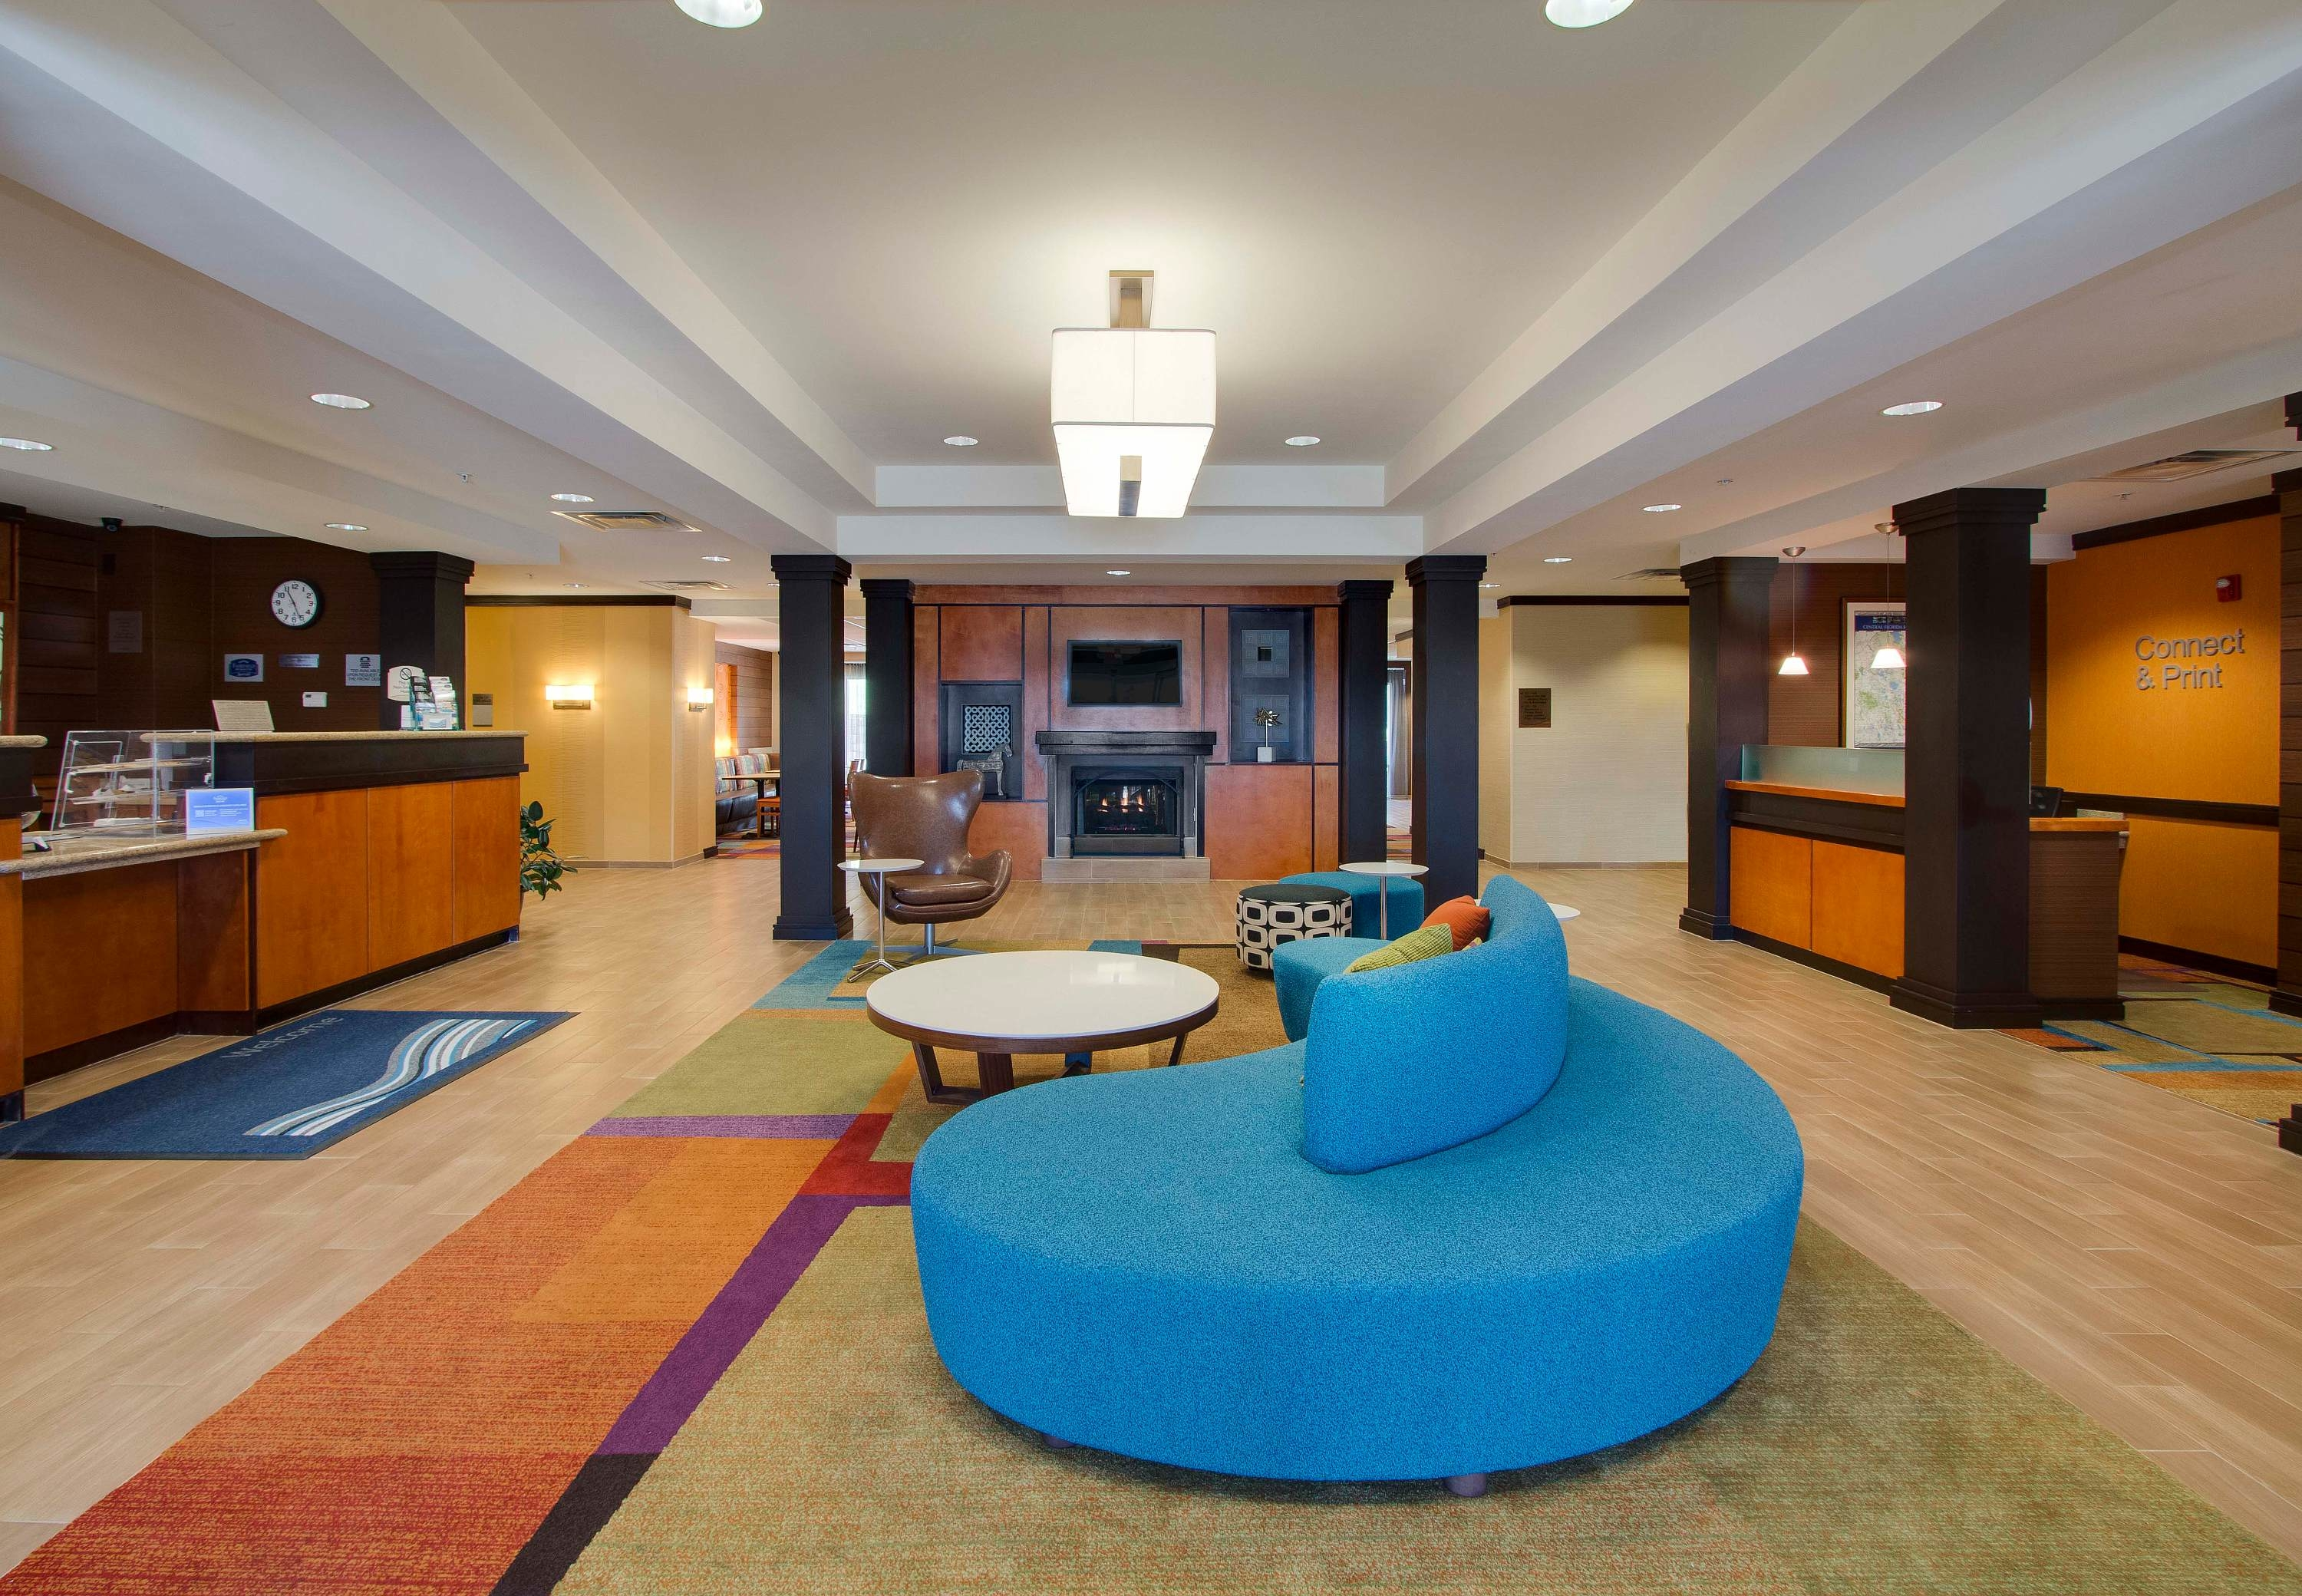 Fairfield Inn & Suites by Marriott Clermont image 11